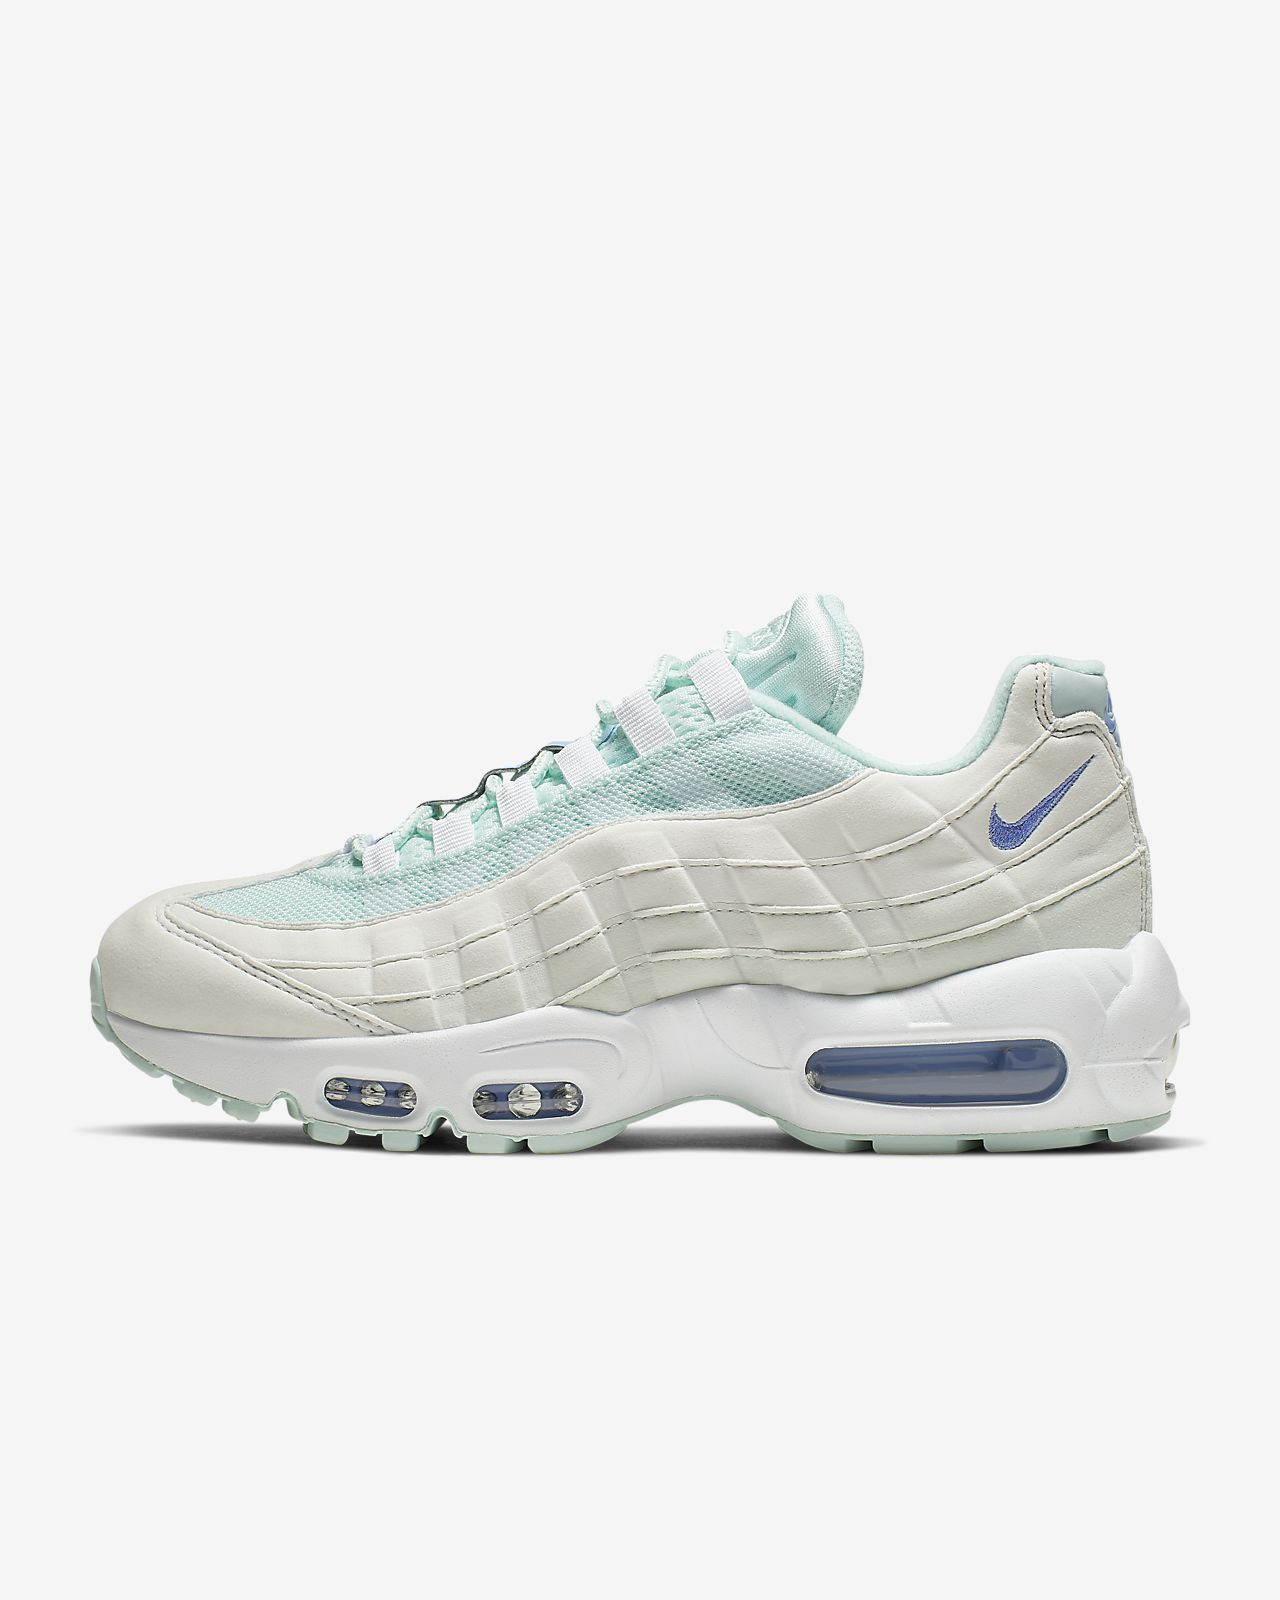 85108d0402 Nike Air Max 95 Women's Shoe. Nike.com